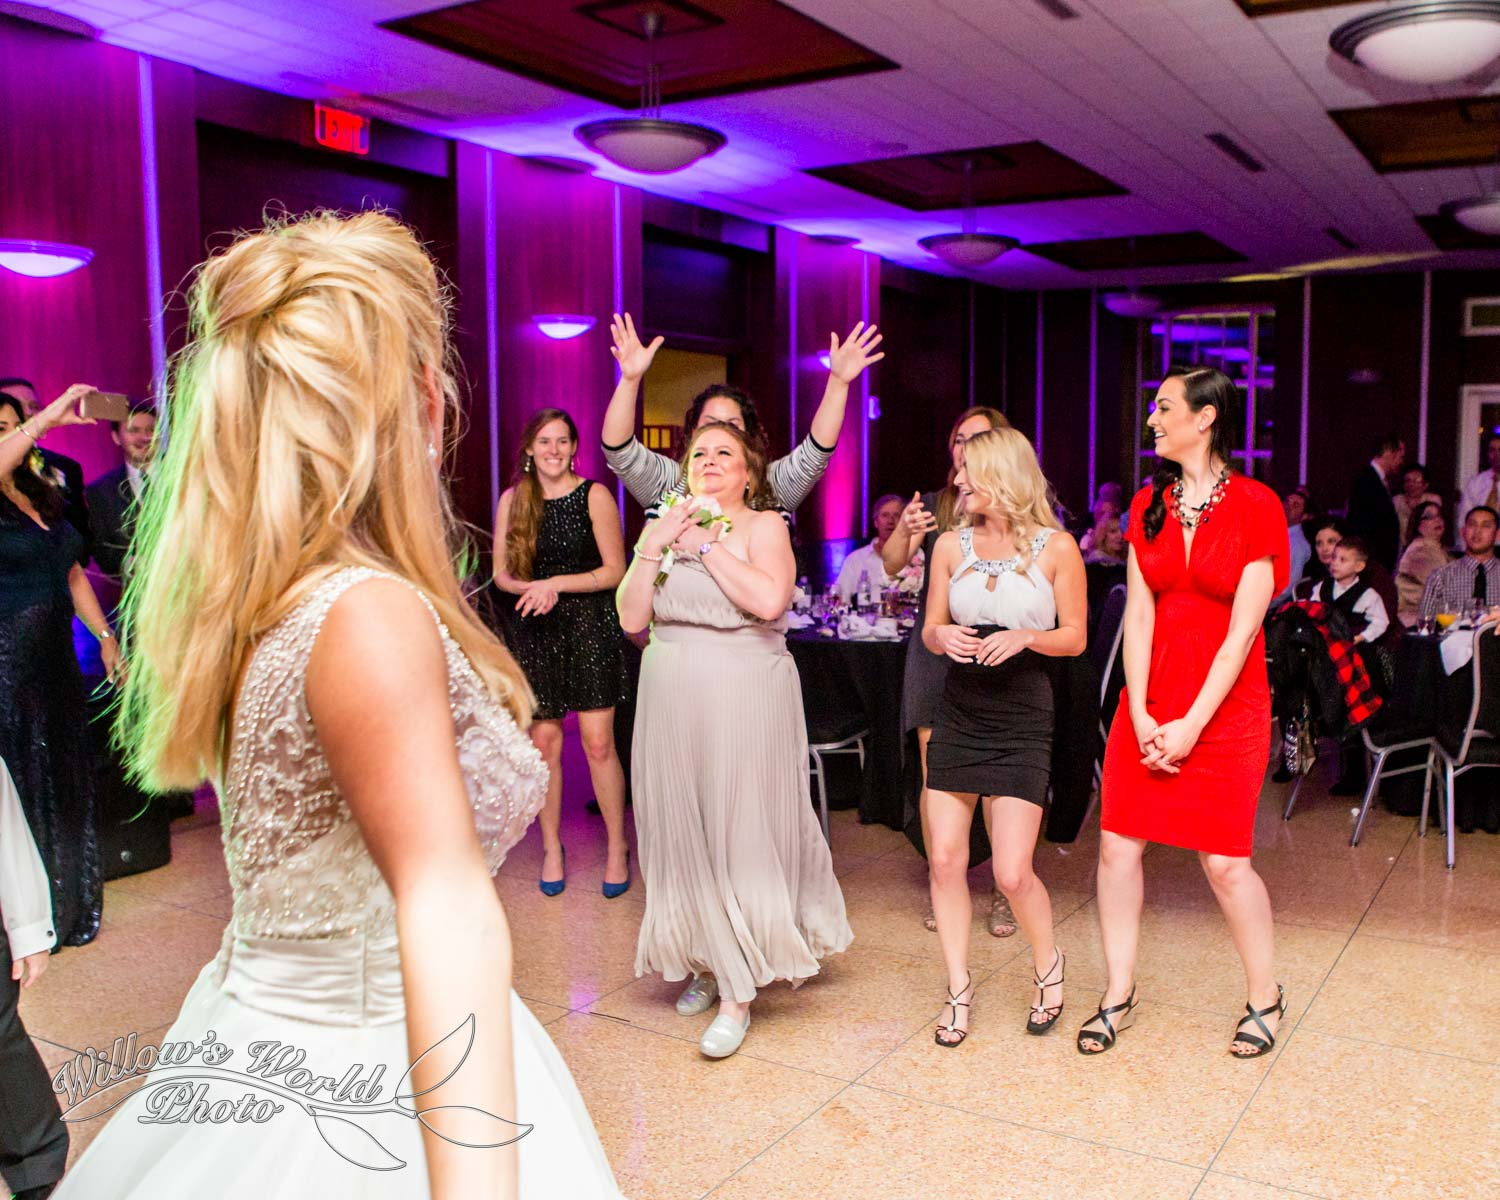 New Orleans Wedding Photos Messinas at the Terminal Willows World Photo-31.jpg